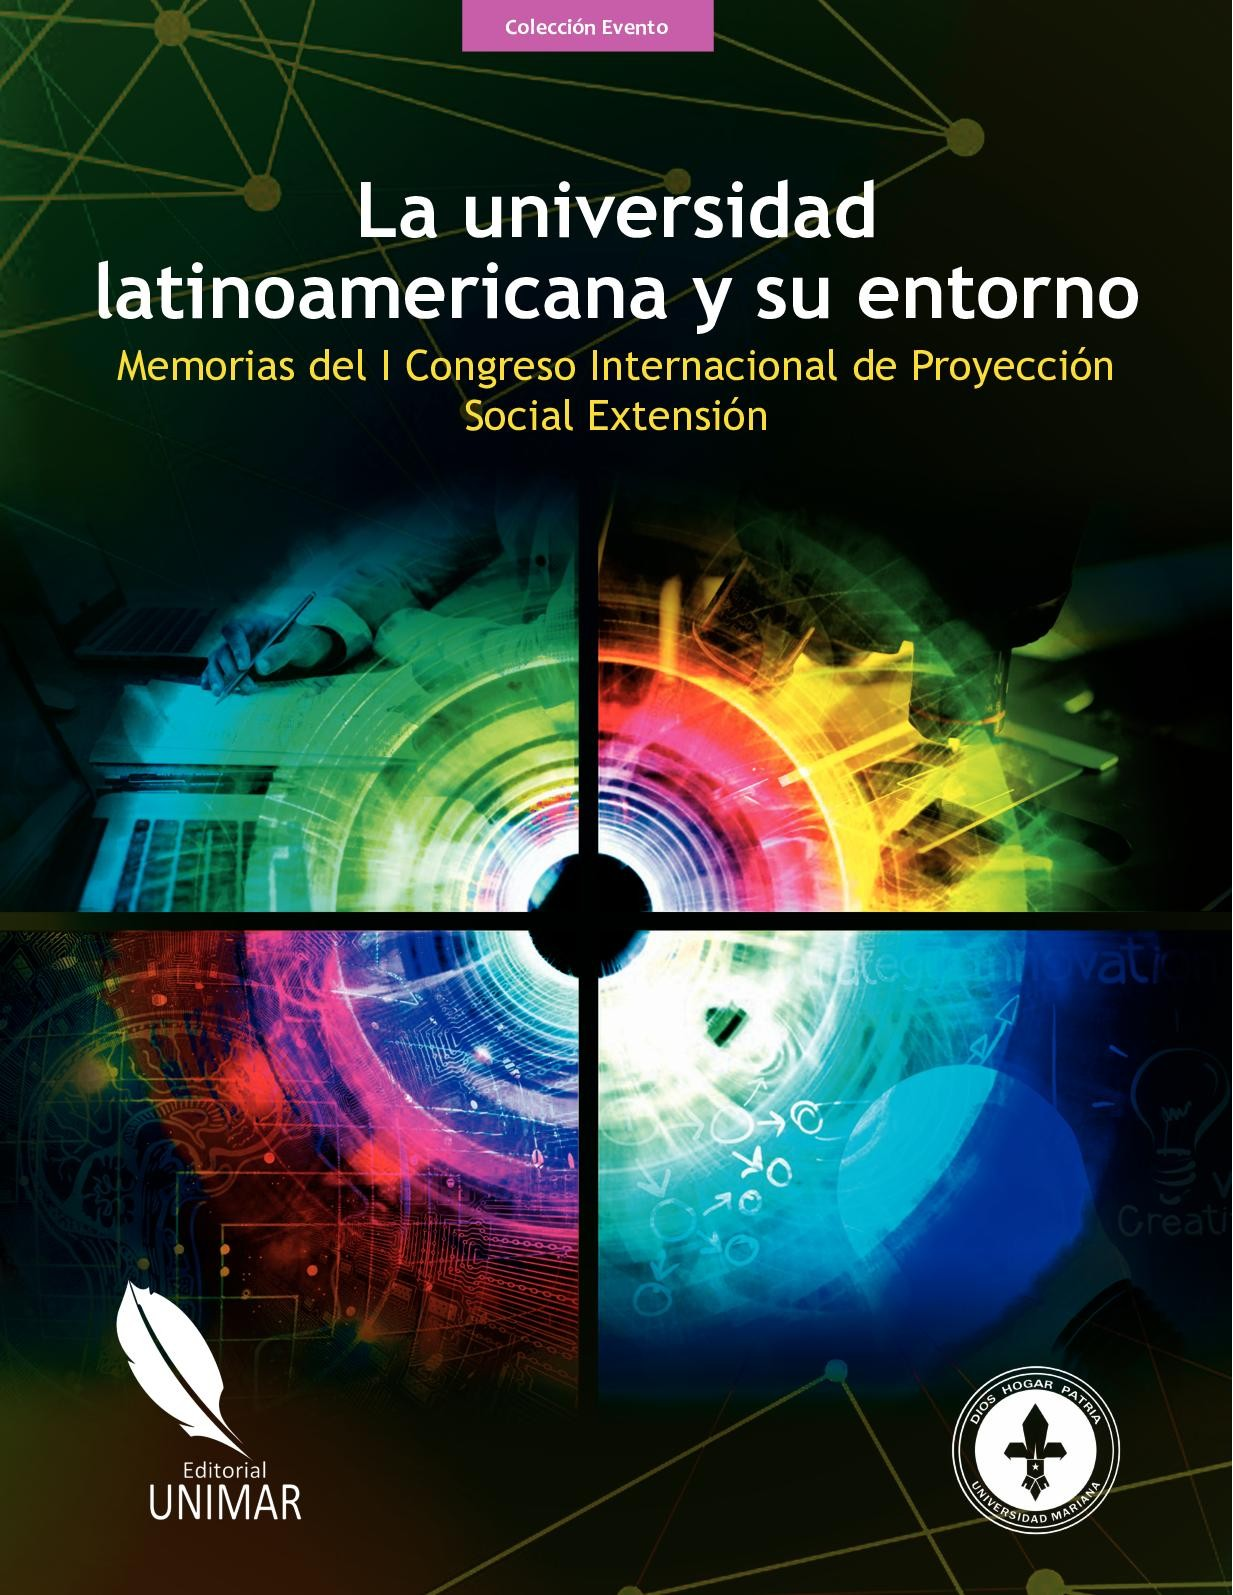 Calendario Escolar 2019 Uaeh Más Reciente Calaméo La Universidad Latinoamericana Y Su Entorno Final Of Calendario Escolar 2019 Uaeh Más Recientes Digitale Fotolijst Test 2011